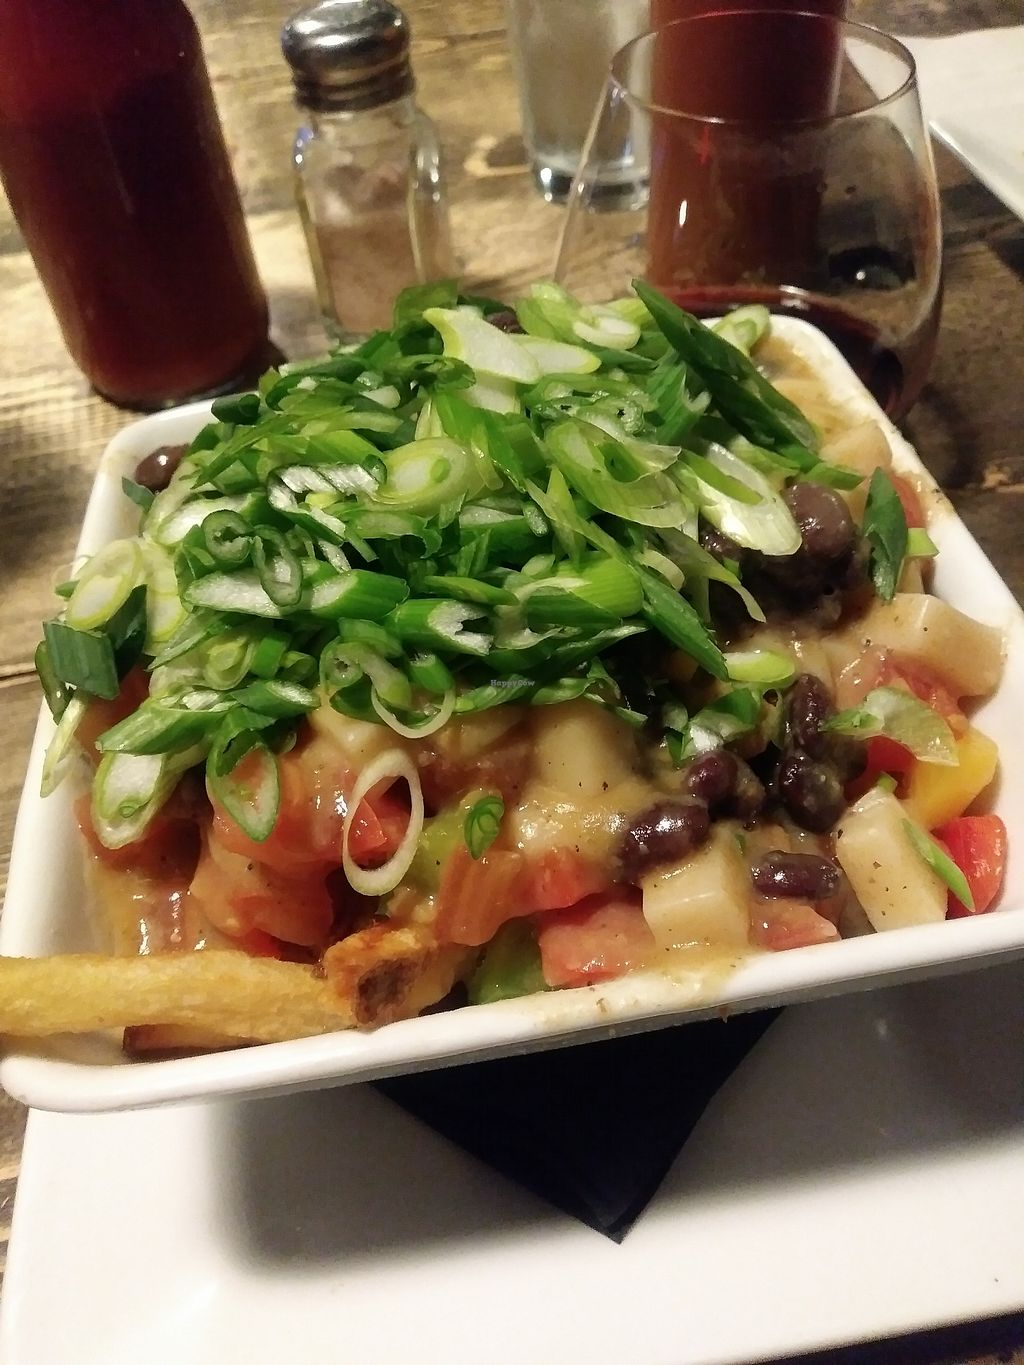 """Photo of Small Axe Bistro  by <a href=""""/members/profile/LolaMeow"""">LolaMeow</a> <br/>Vegan Nacho Poutine <br/> February 15, 2018  - <a href='/contact/abuse/image/98968/359701'>Report</a>"""